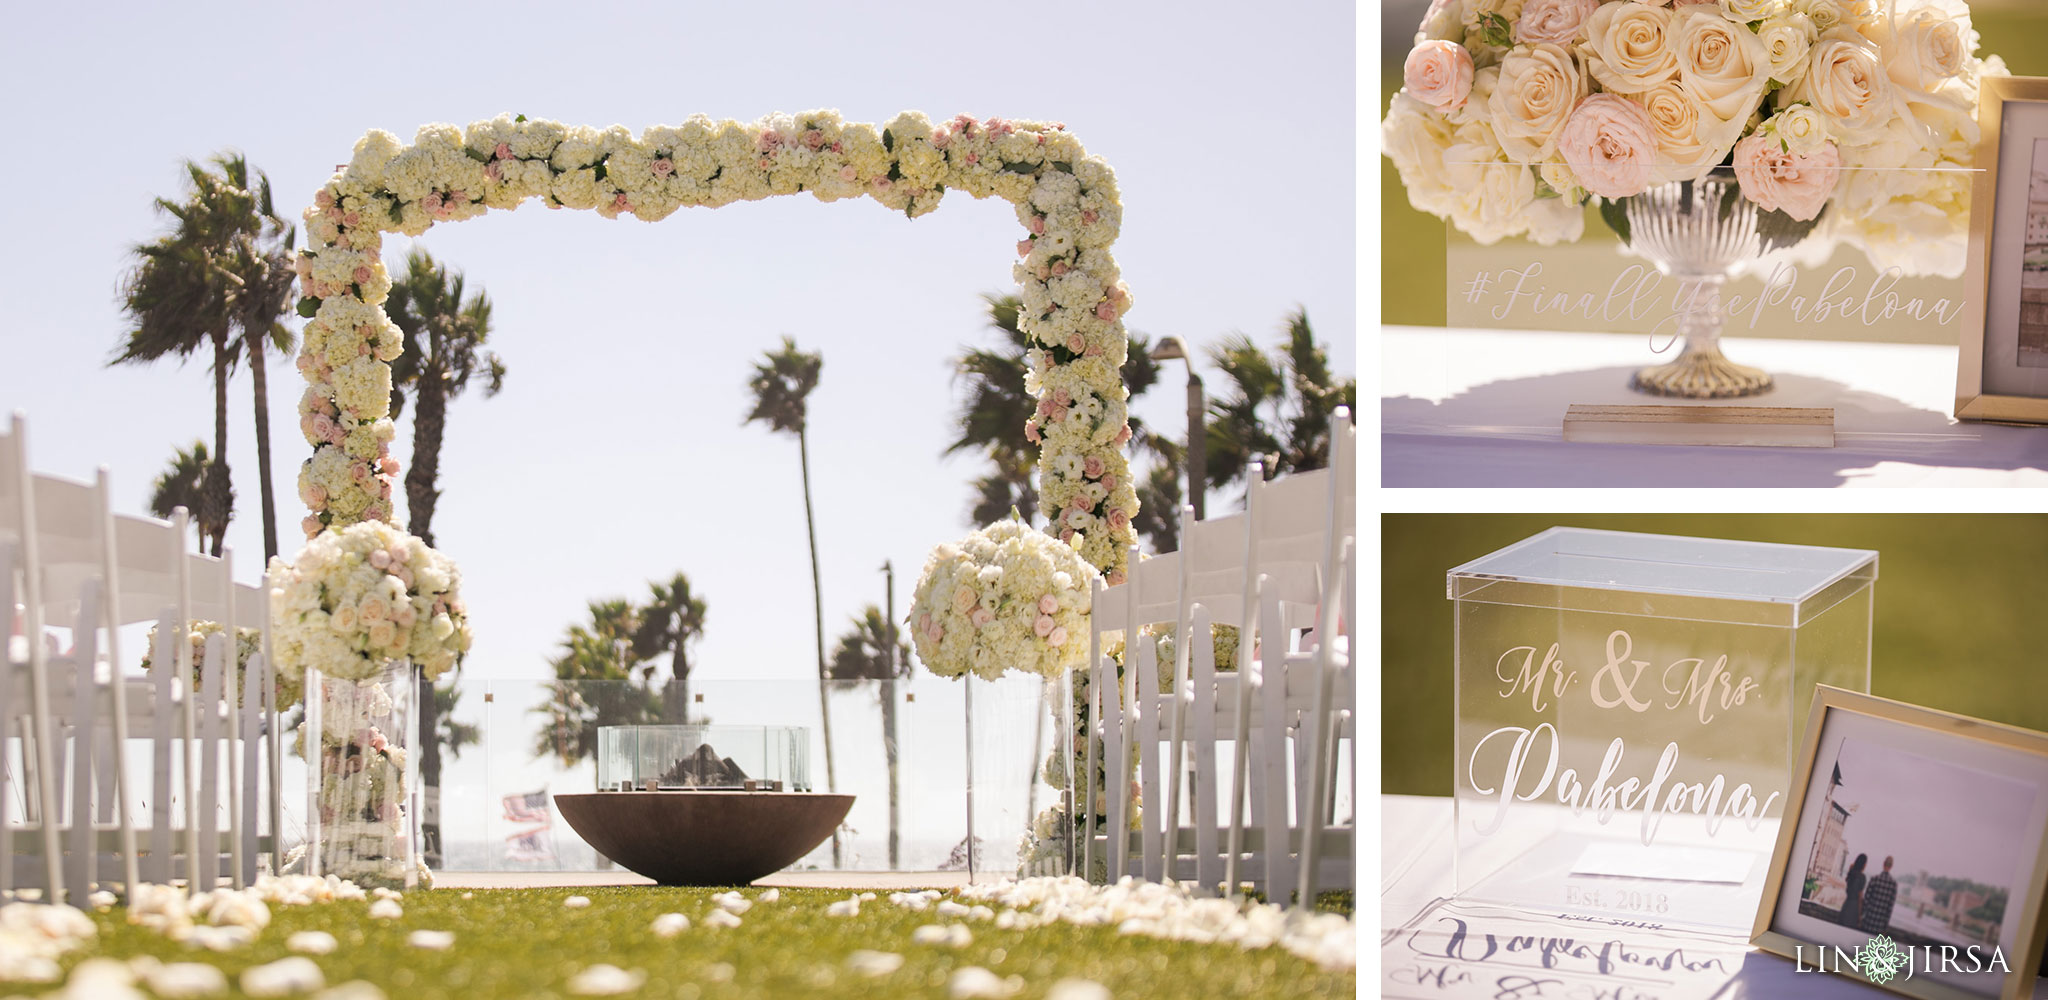 09 AR Pasea Huntington Beach Orange County Wedding Photography